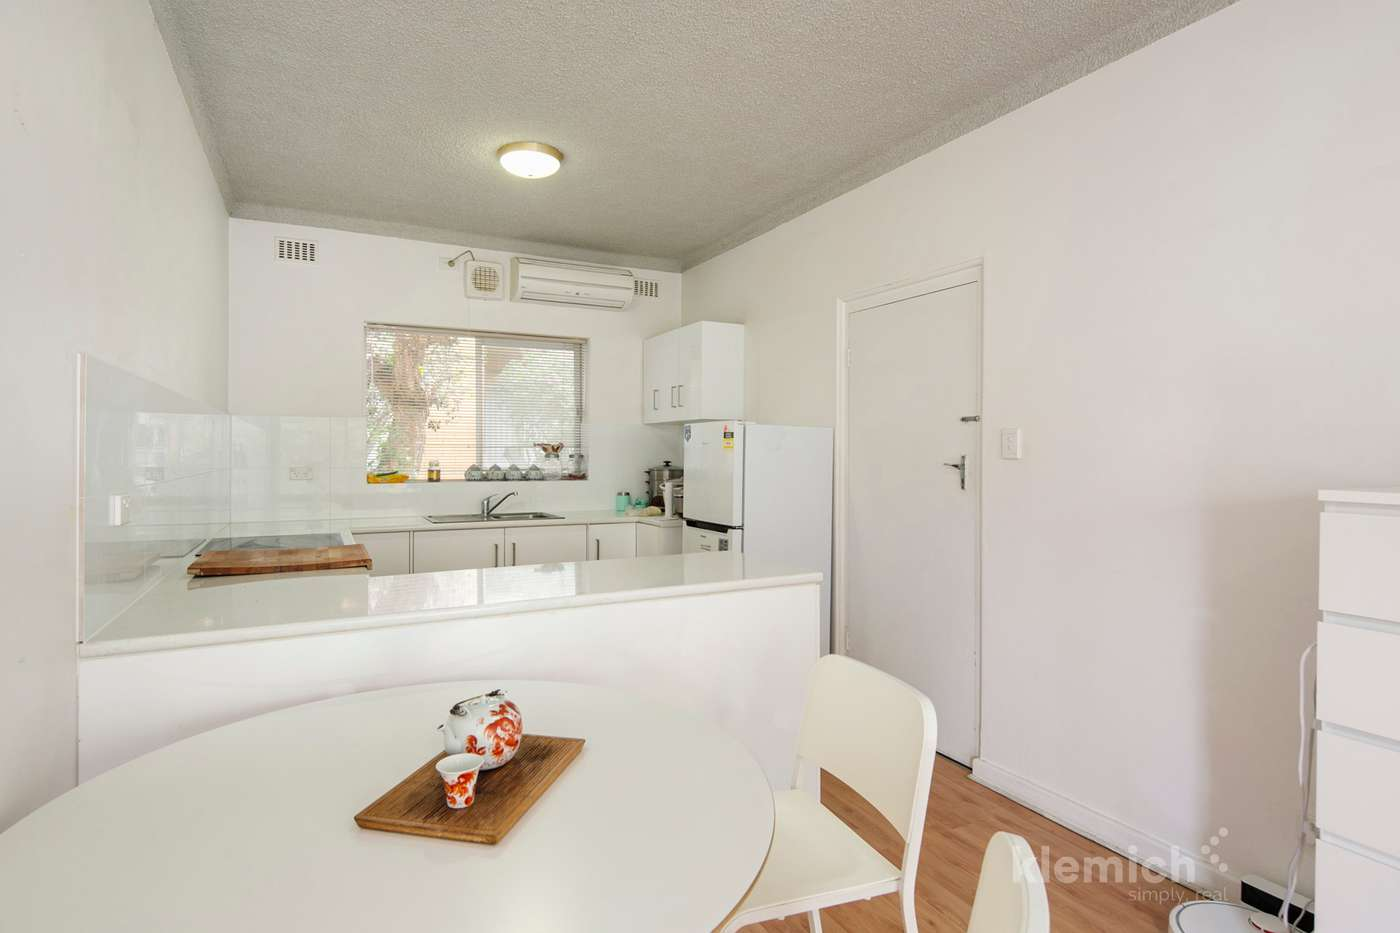 Main view of Homely unit listing, 11/4 Collyer Court, Linden Park, SA 5065